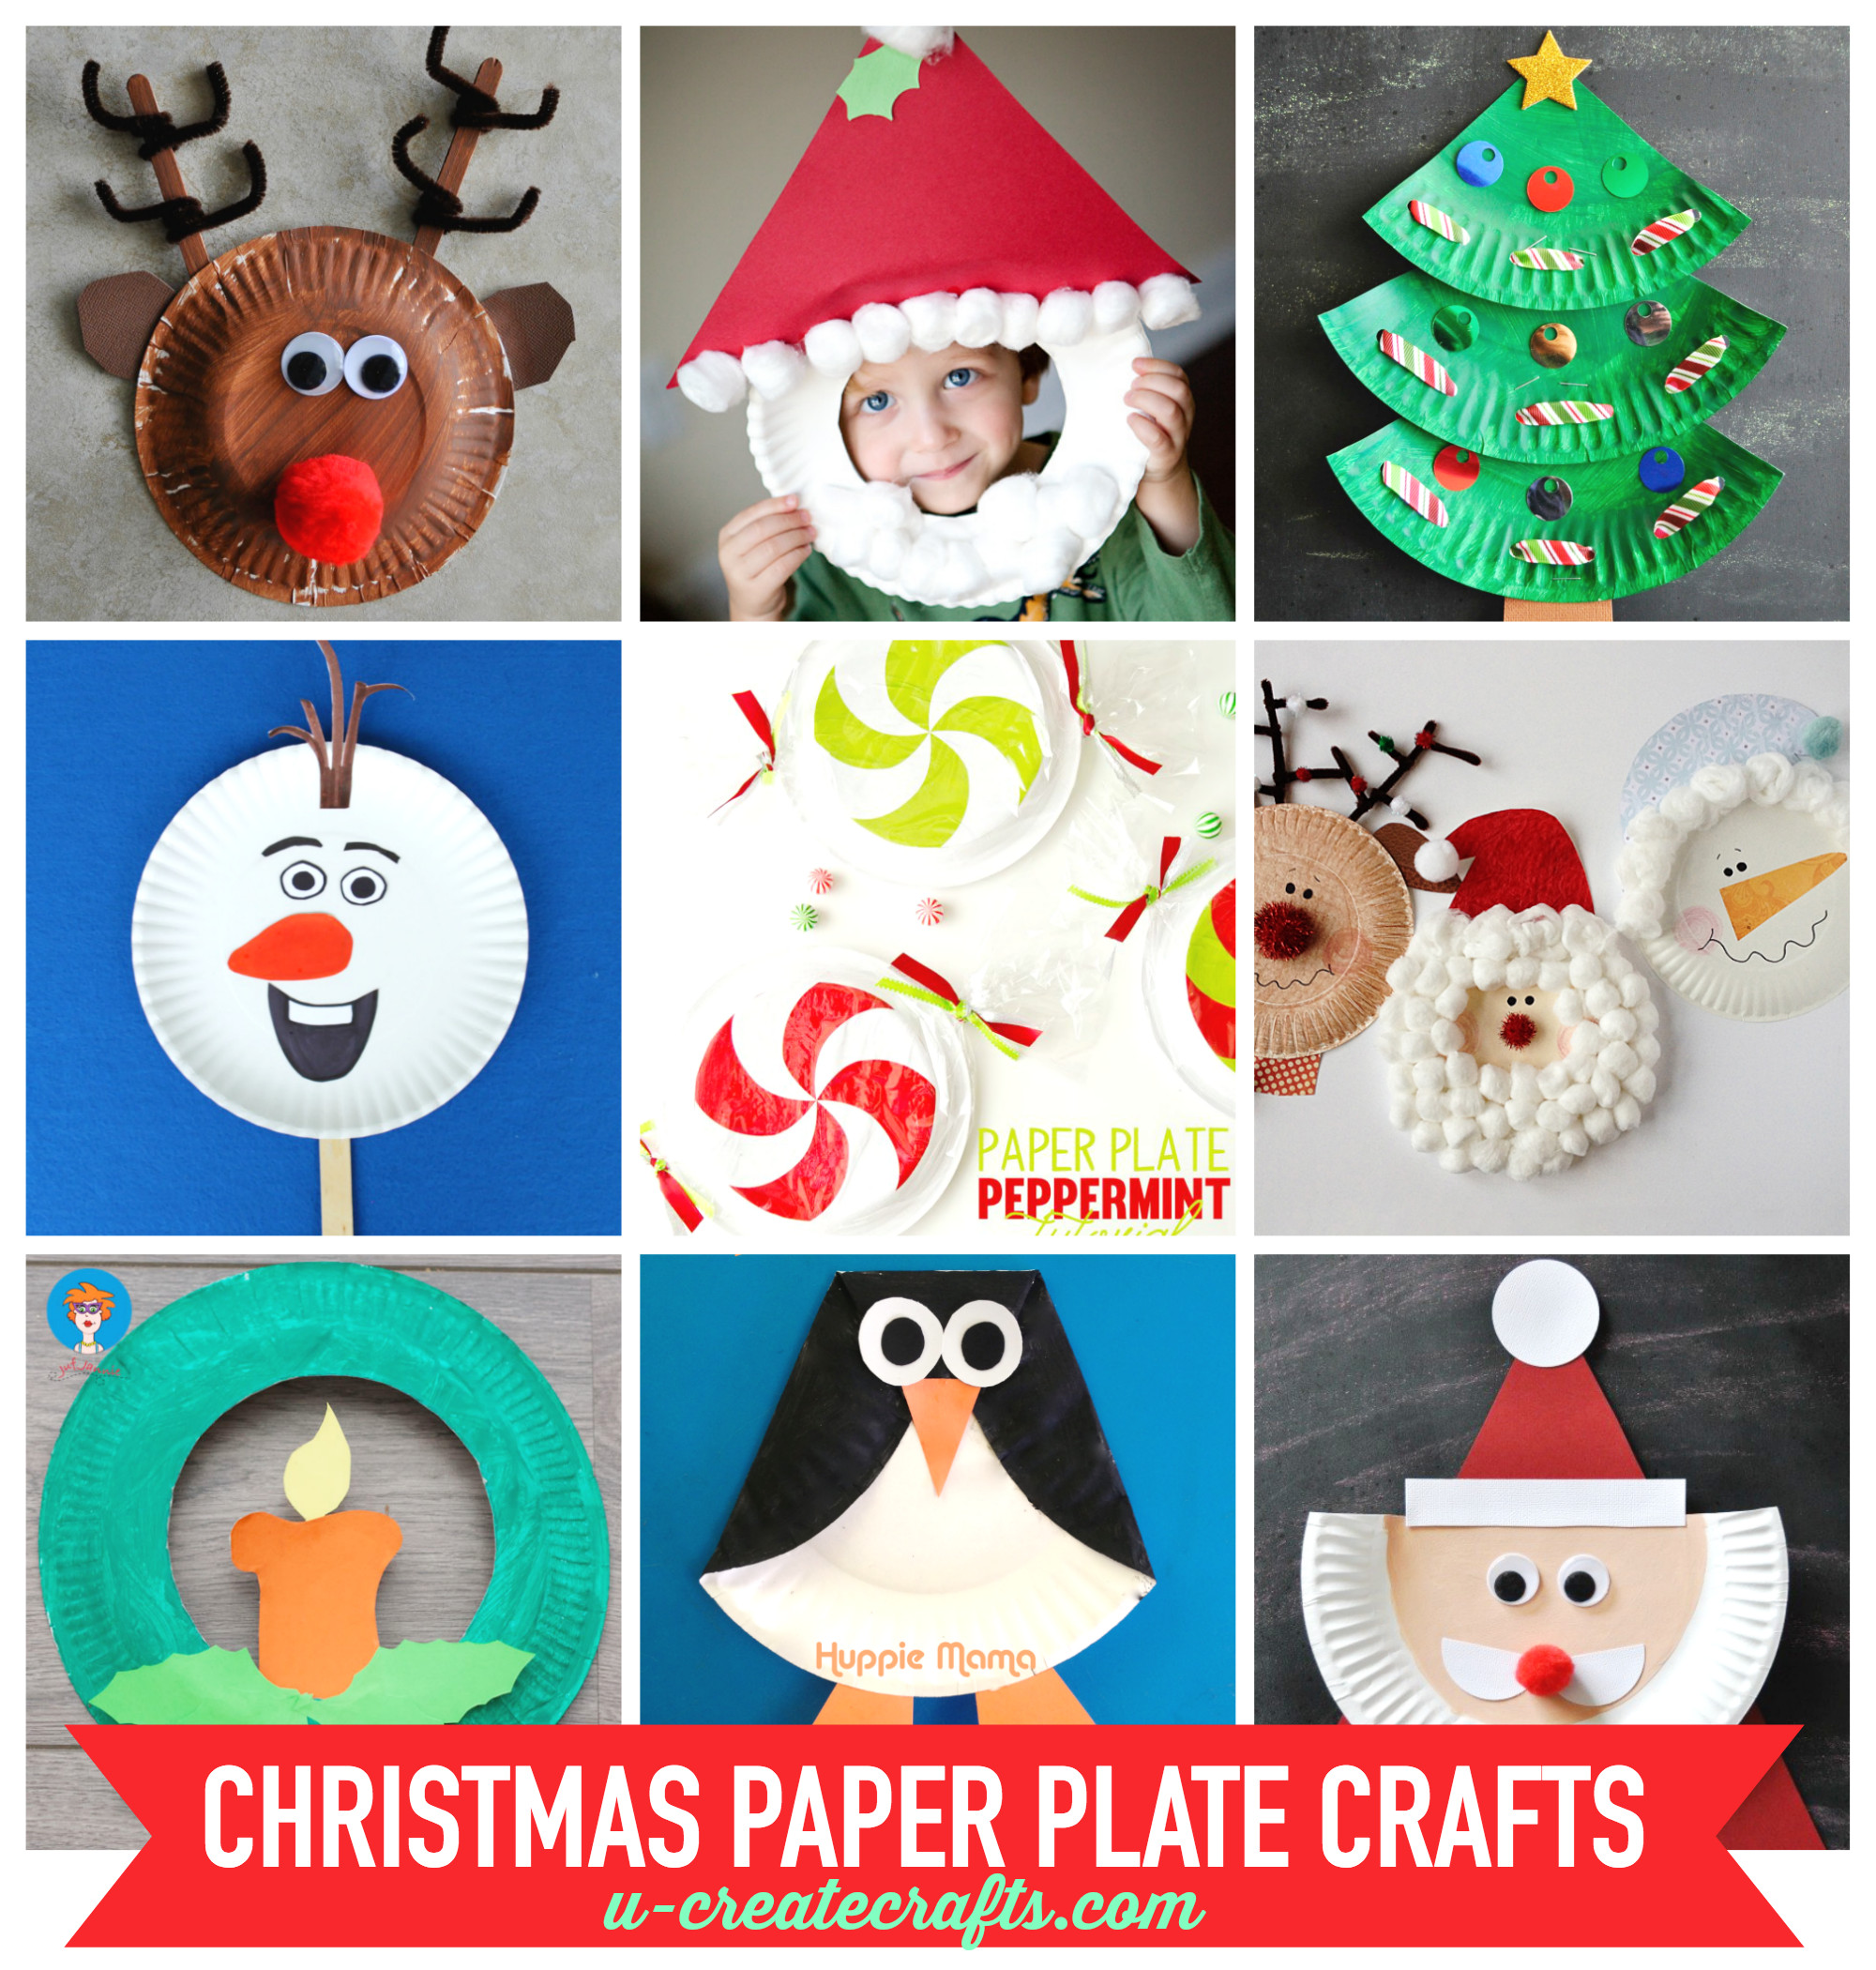 Best ideas about Kids Christmas Craft Ideas . Save or Pin Paper Plate Christmas Crafts U Create Now.